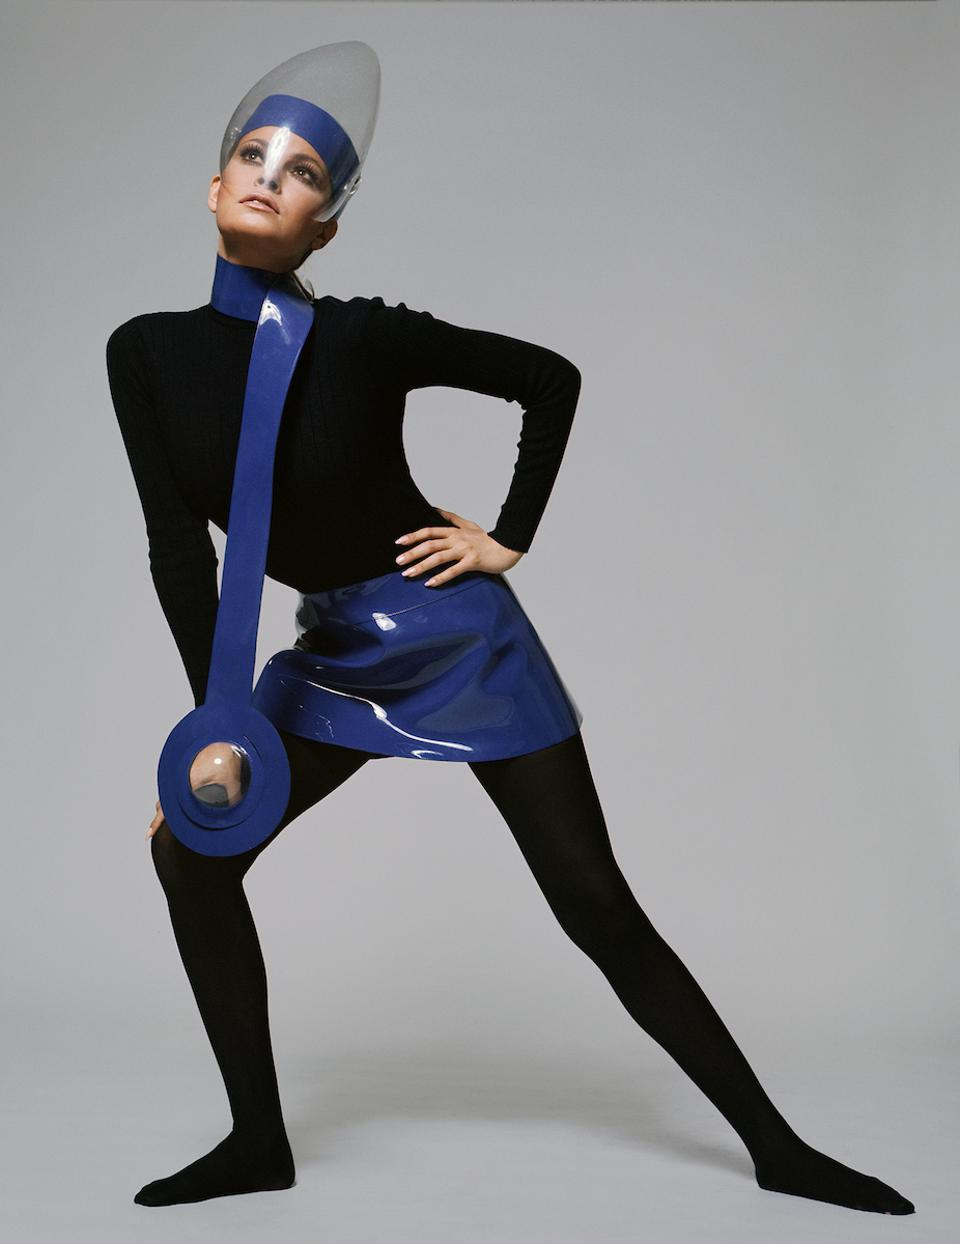 A Blockbuster Pierre Cardin Retrospective At The Brooklyn Museum Shows Why The World Still Hasn't Caught Up With The Legendary 97-Year-Old Designer